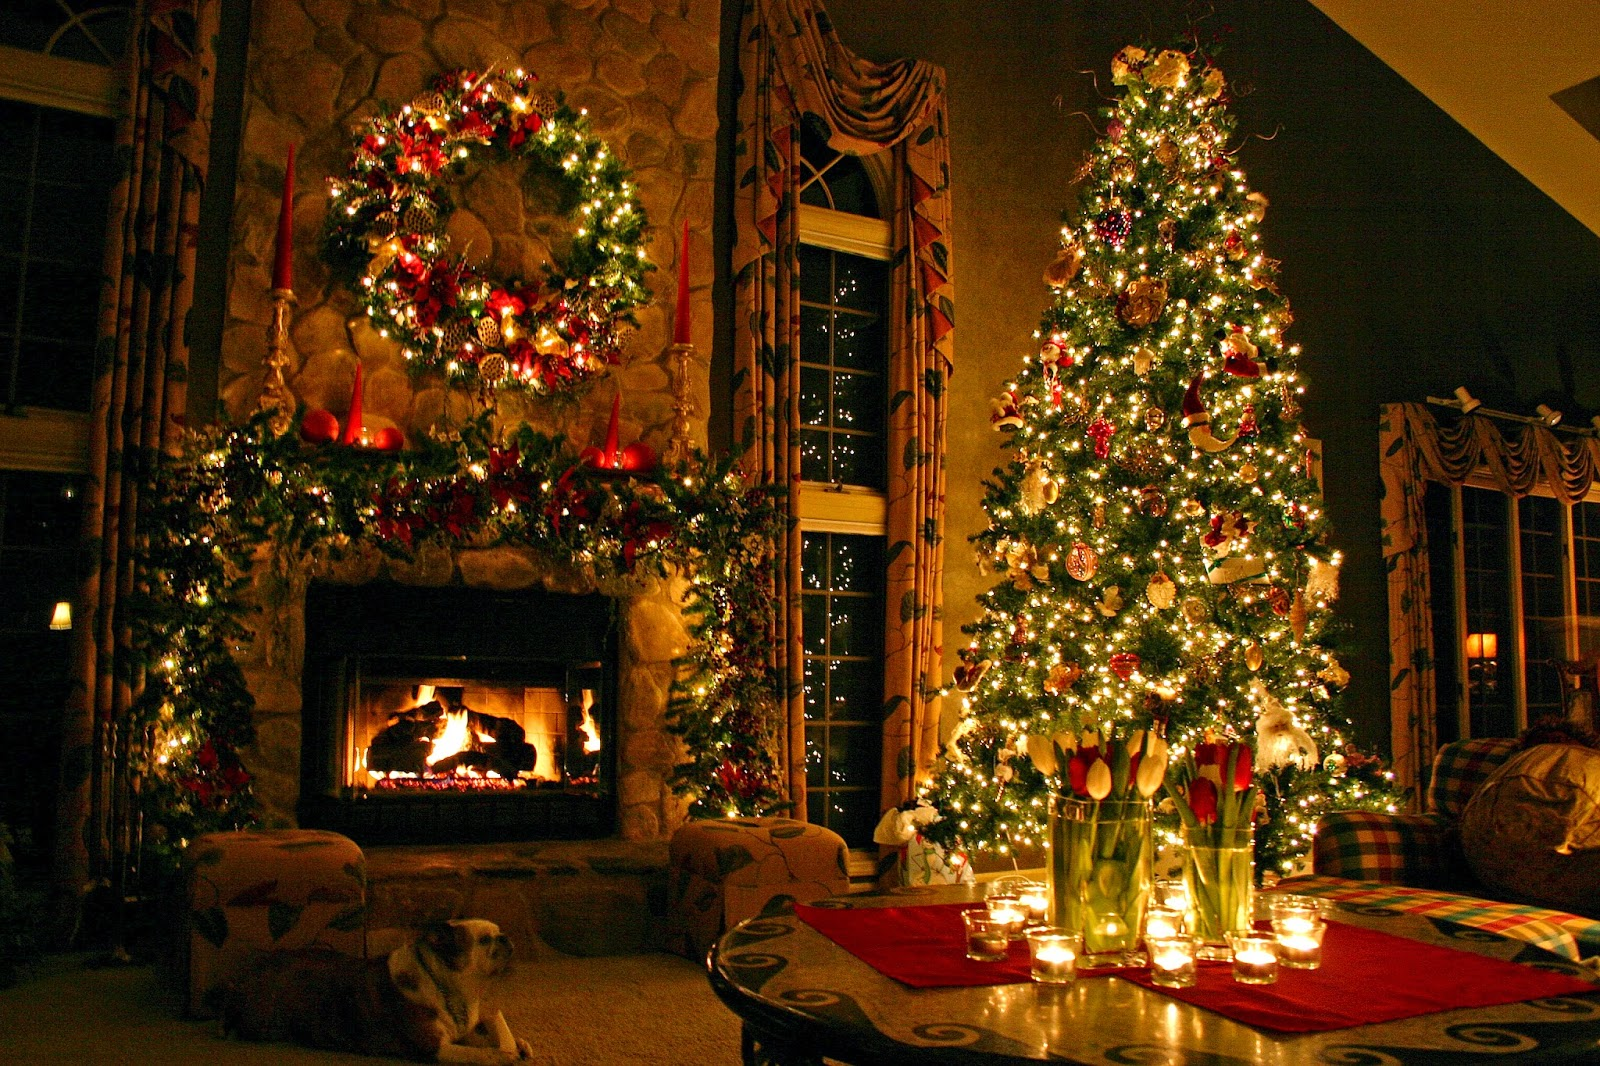 christmas-fire-place-glowing-mantels-decorations-ideas-wallpapers-pictures.jpg